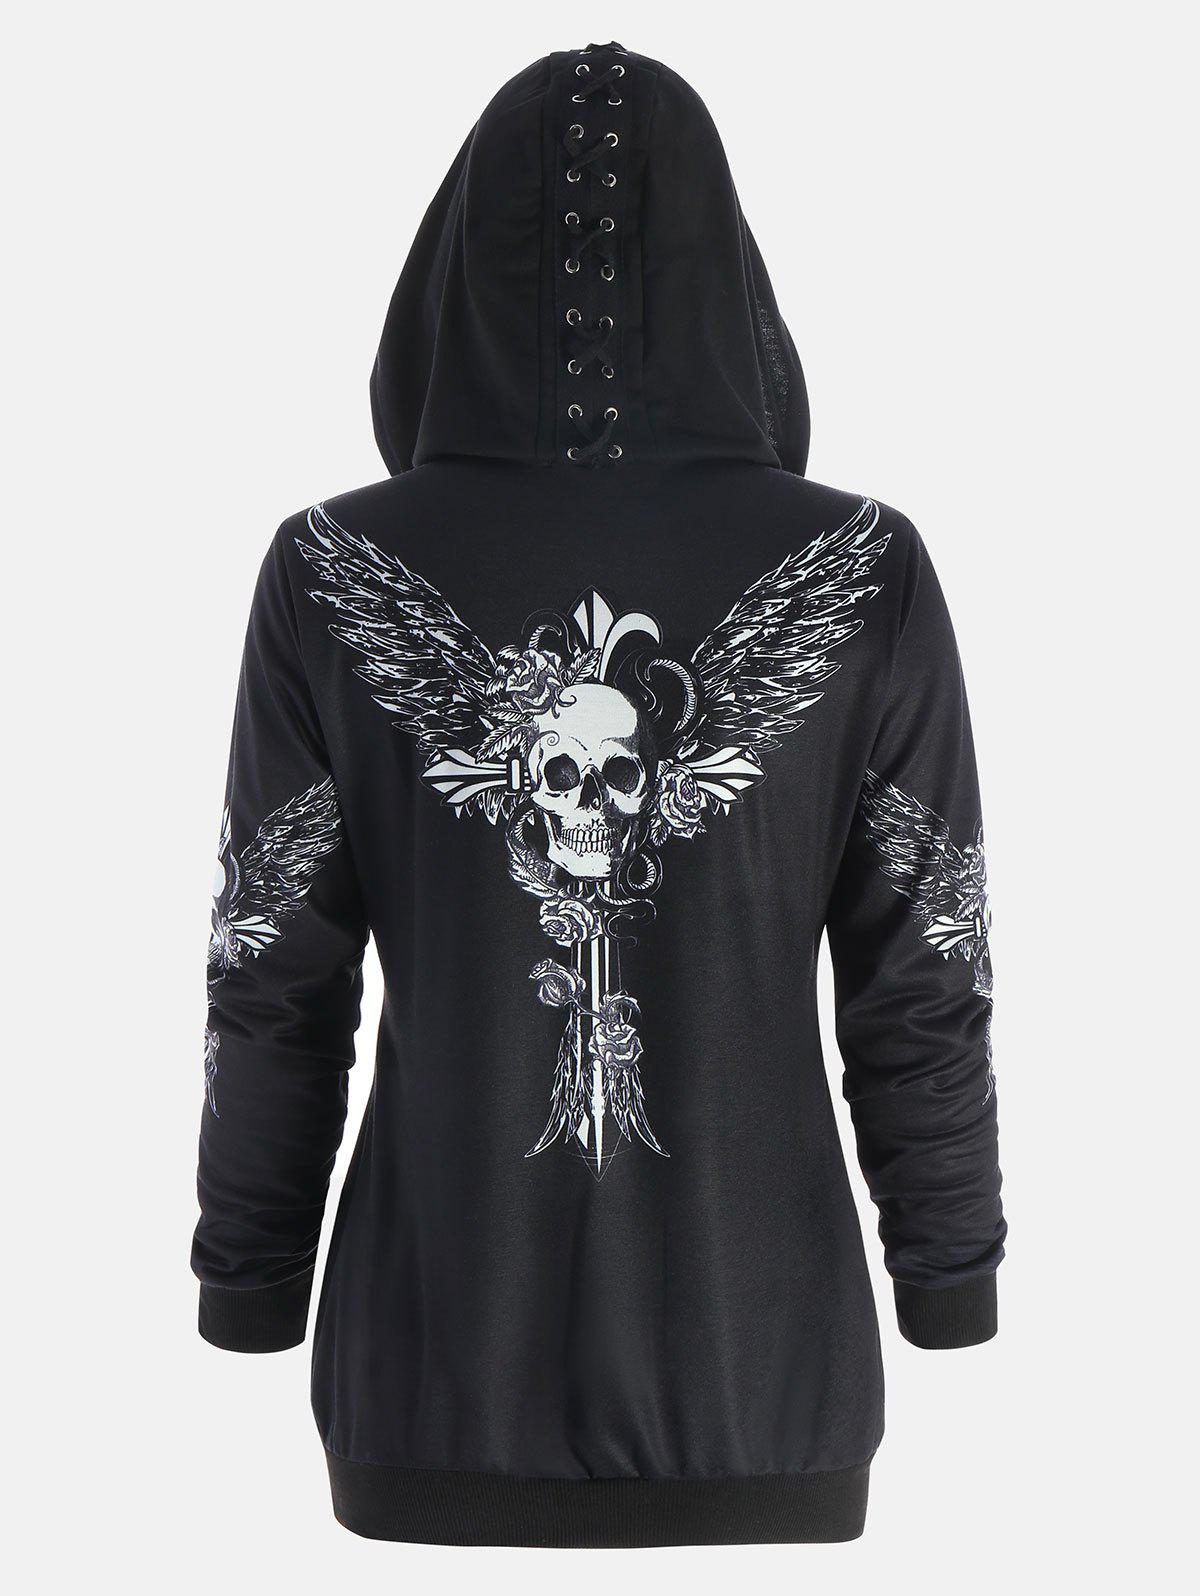 Halloween Skull Wings Print Zip Up HoodieWOMEN<br><br>Size: L; Color: BLACK; Material: Polyester; Shirt Length: Regular; Sleeve Length: Full; Style: Punk; Pattern Style: Print,Skulls; Embellishment: Criss-Cross; Season: Fall,Spring,Winter; Weight: 0.5200kg; Package Contents: 1 x Hoodie;